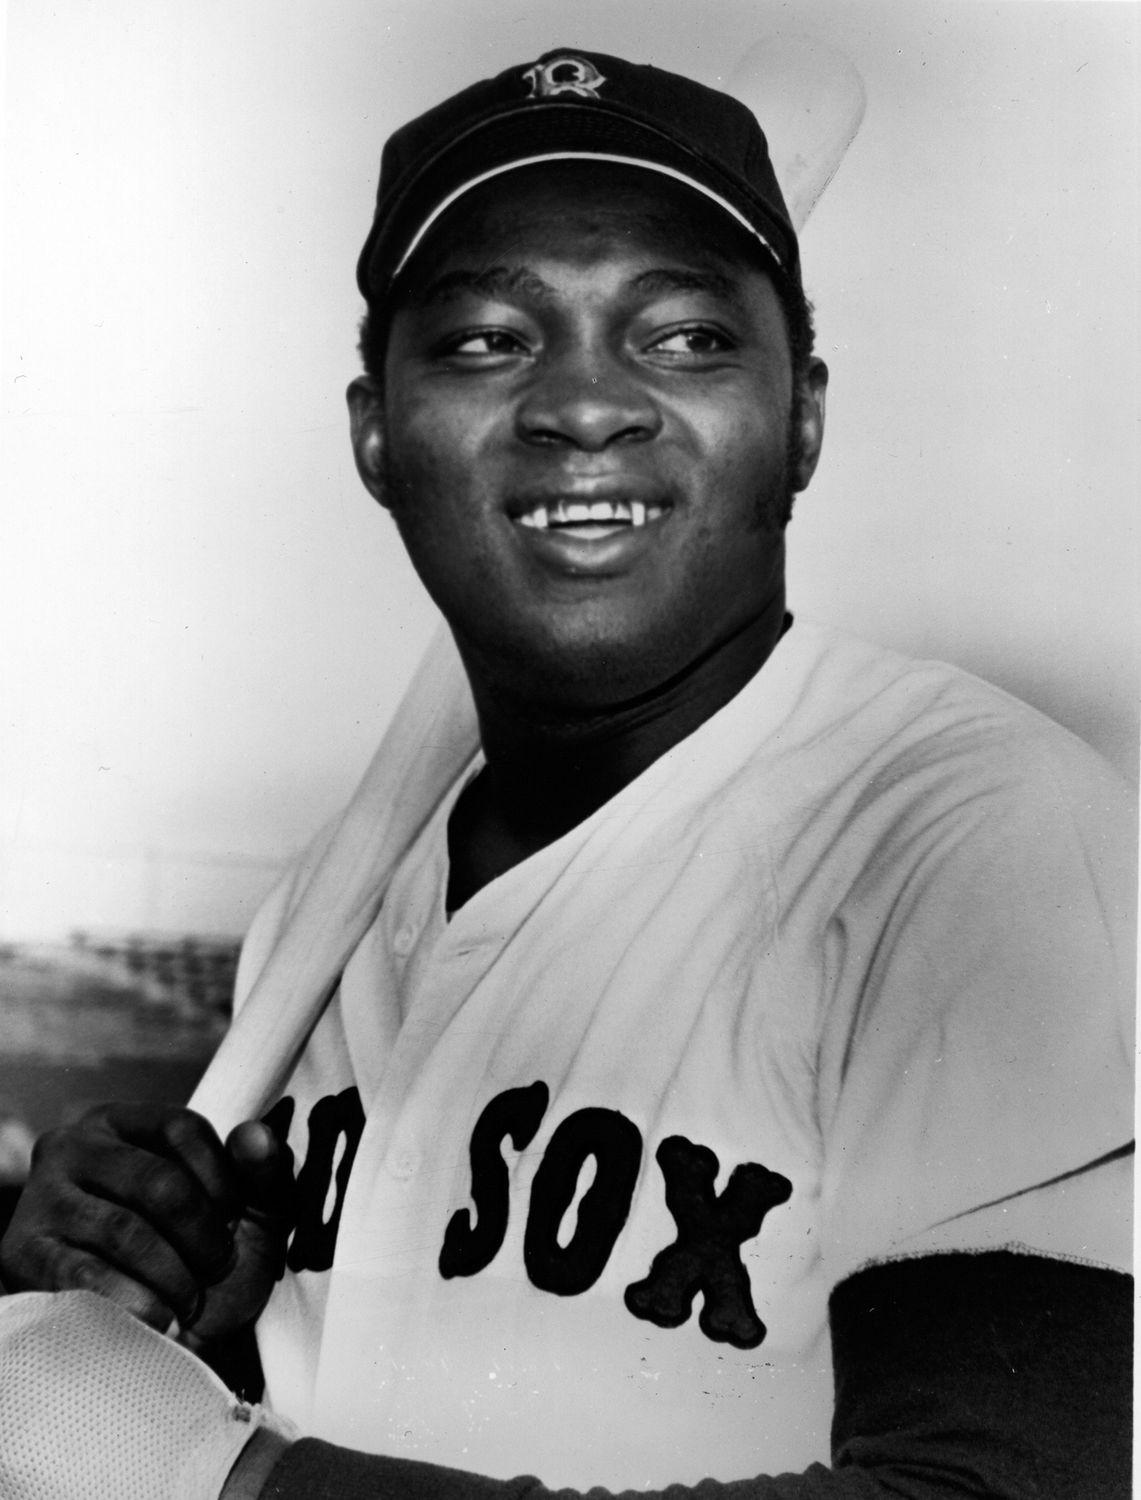 d405ea32ae9df George Scott began his career with the Boston Red Sox in 1966 and stayed  through the 1971 season. He would return to Boston in 1977 and would remain  with ...